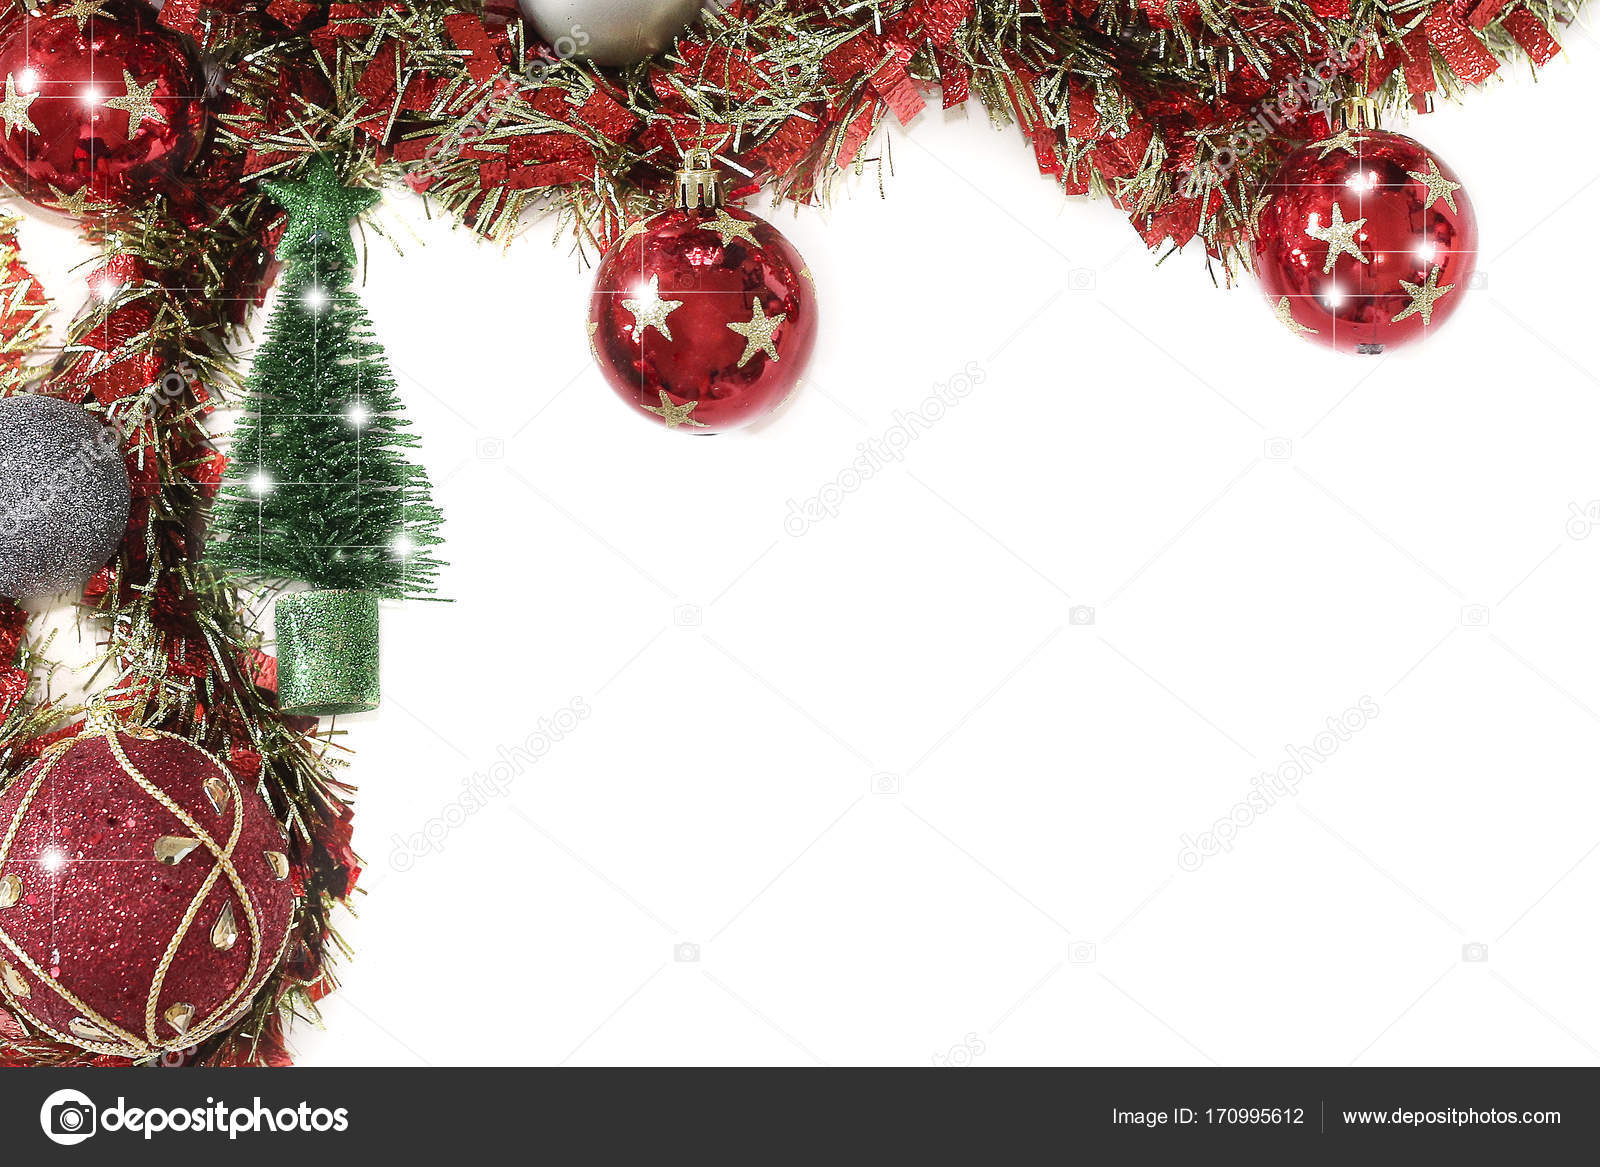 Christmas Greeting Cards Images.Christmas Greeting Cards Design Mockup Stock Photo